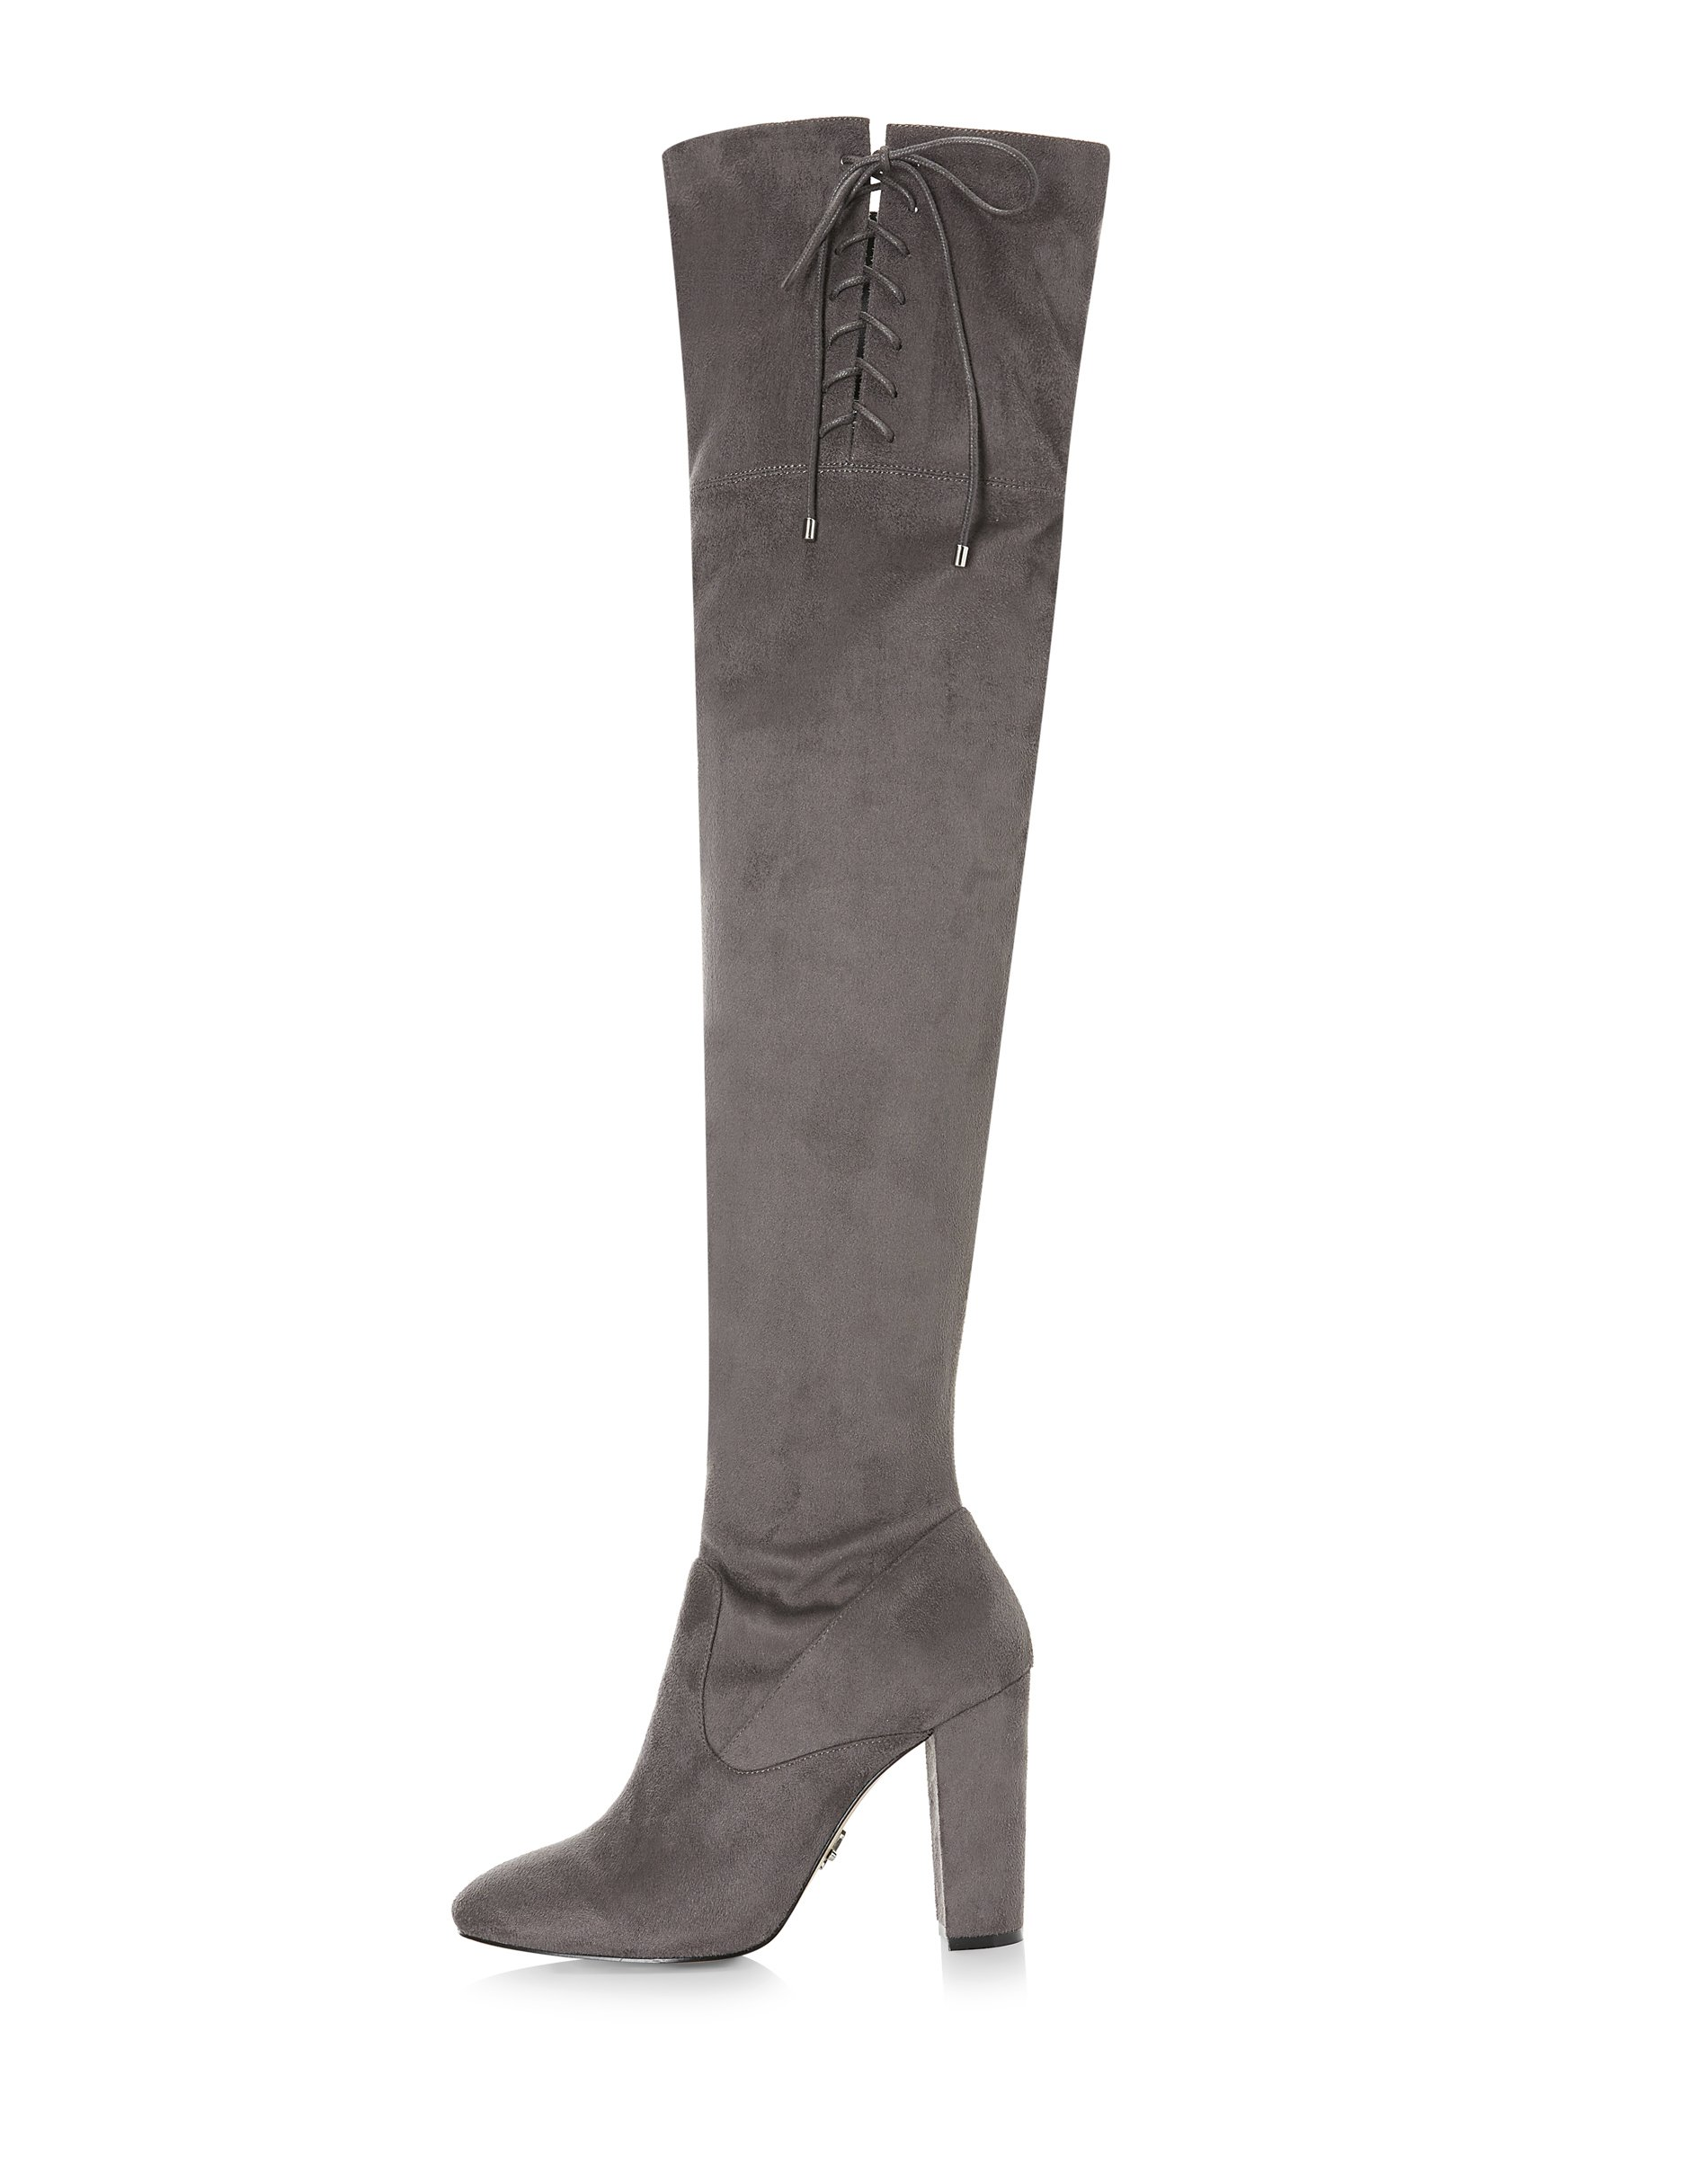 Lipsy Womens Over The Knee Boots Grey US 10